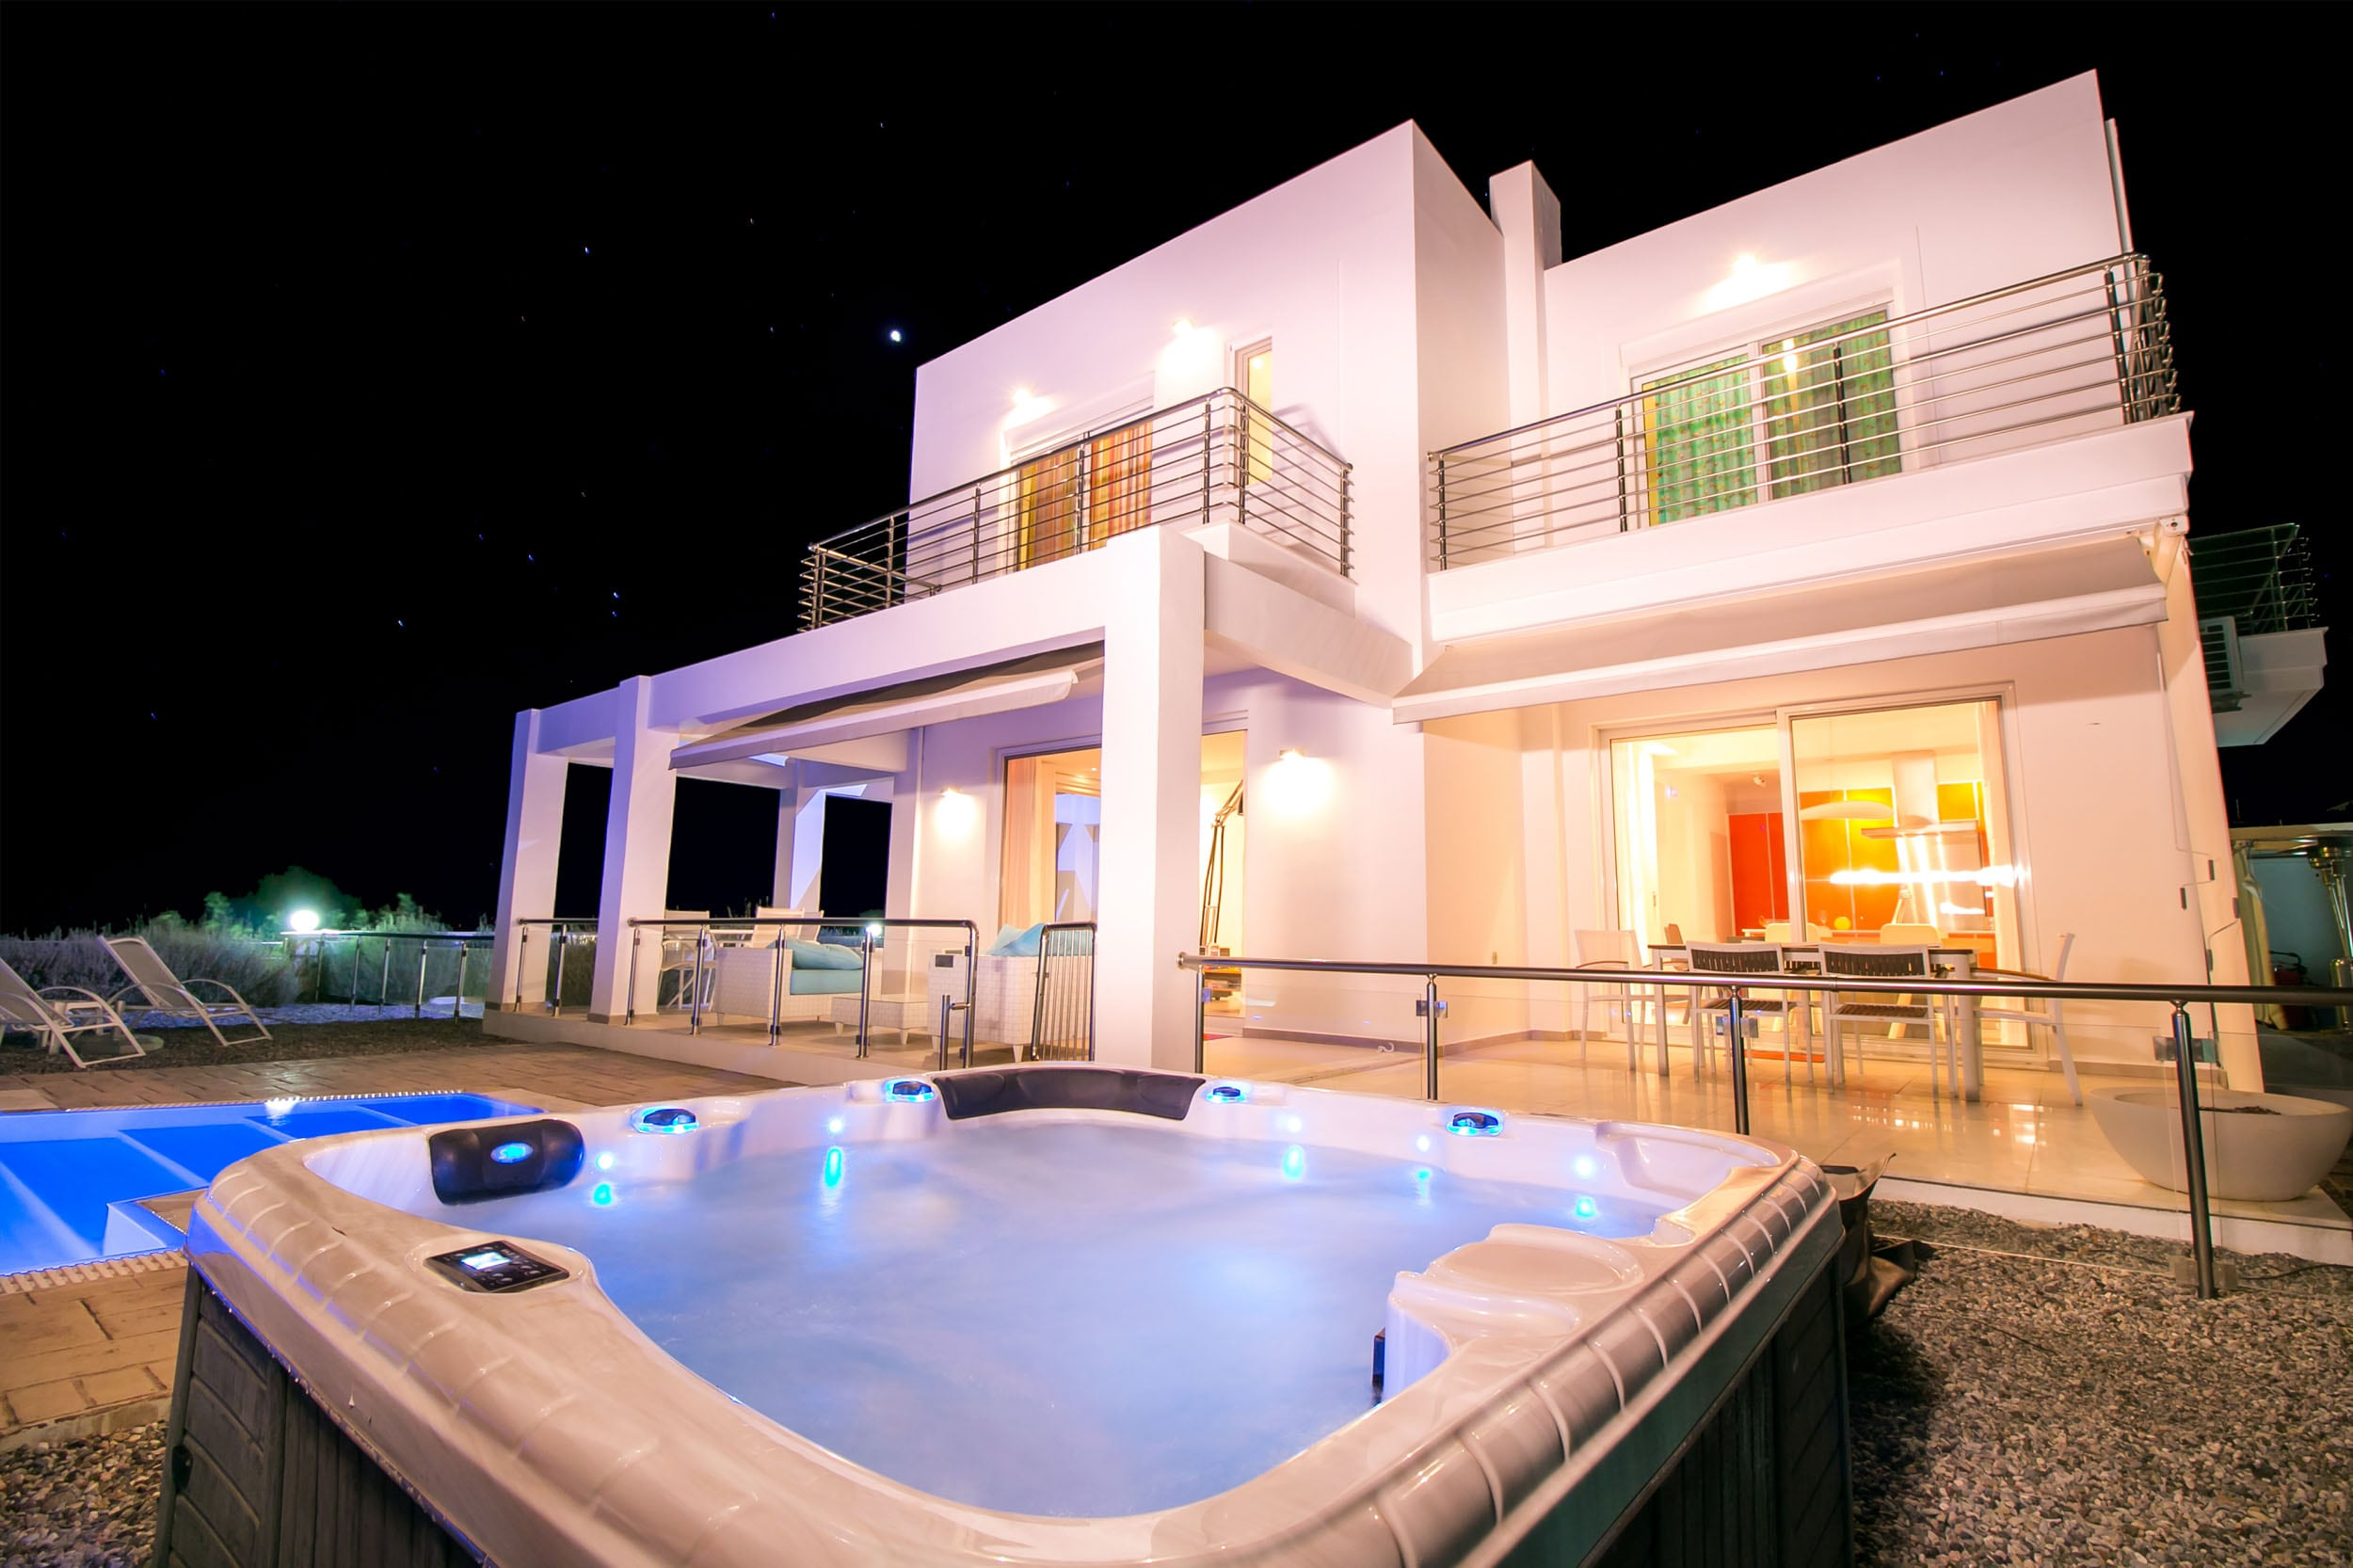 Property Image 2 - Elegant 3 bedroom villa with private pool and Jacuzzi